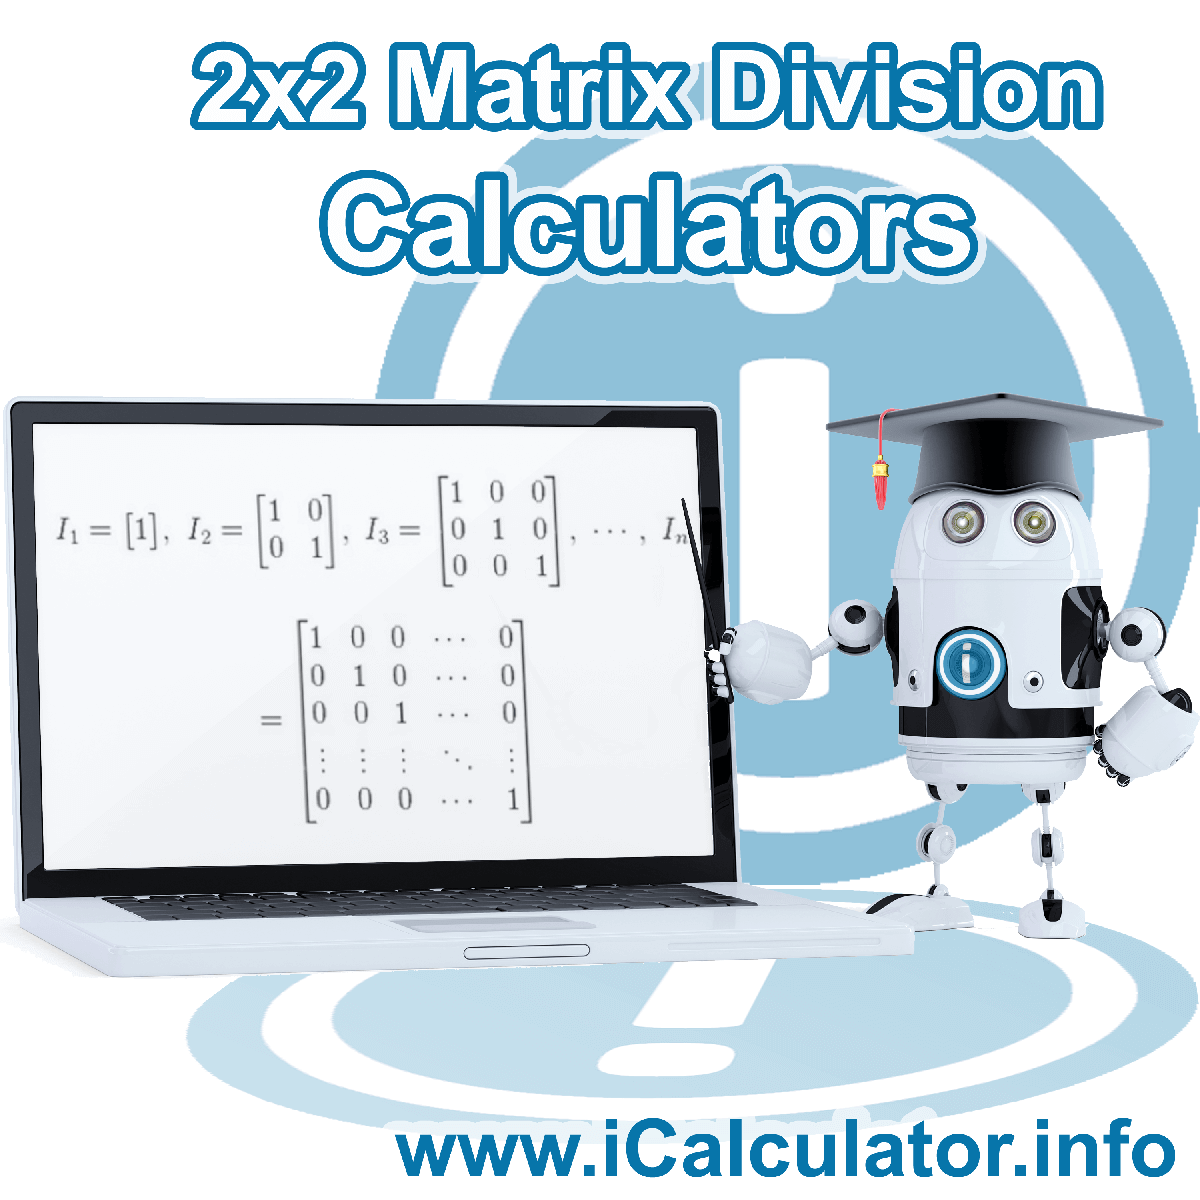 2x2 Matrix Division Calculator. This image shows the properties and Matrix formula for the 2x2 Matrix Division Calculator